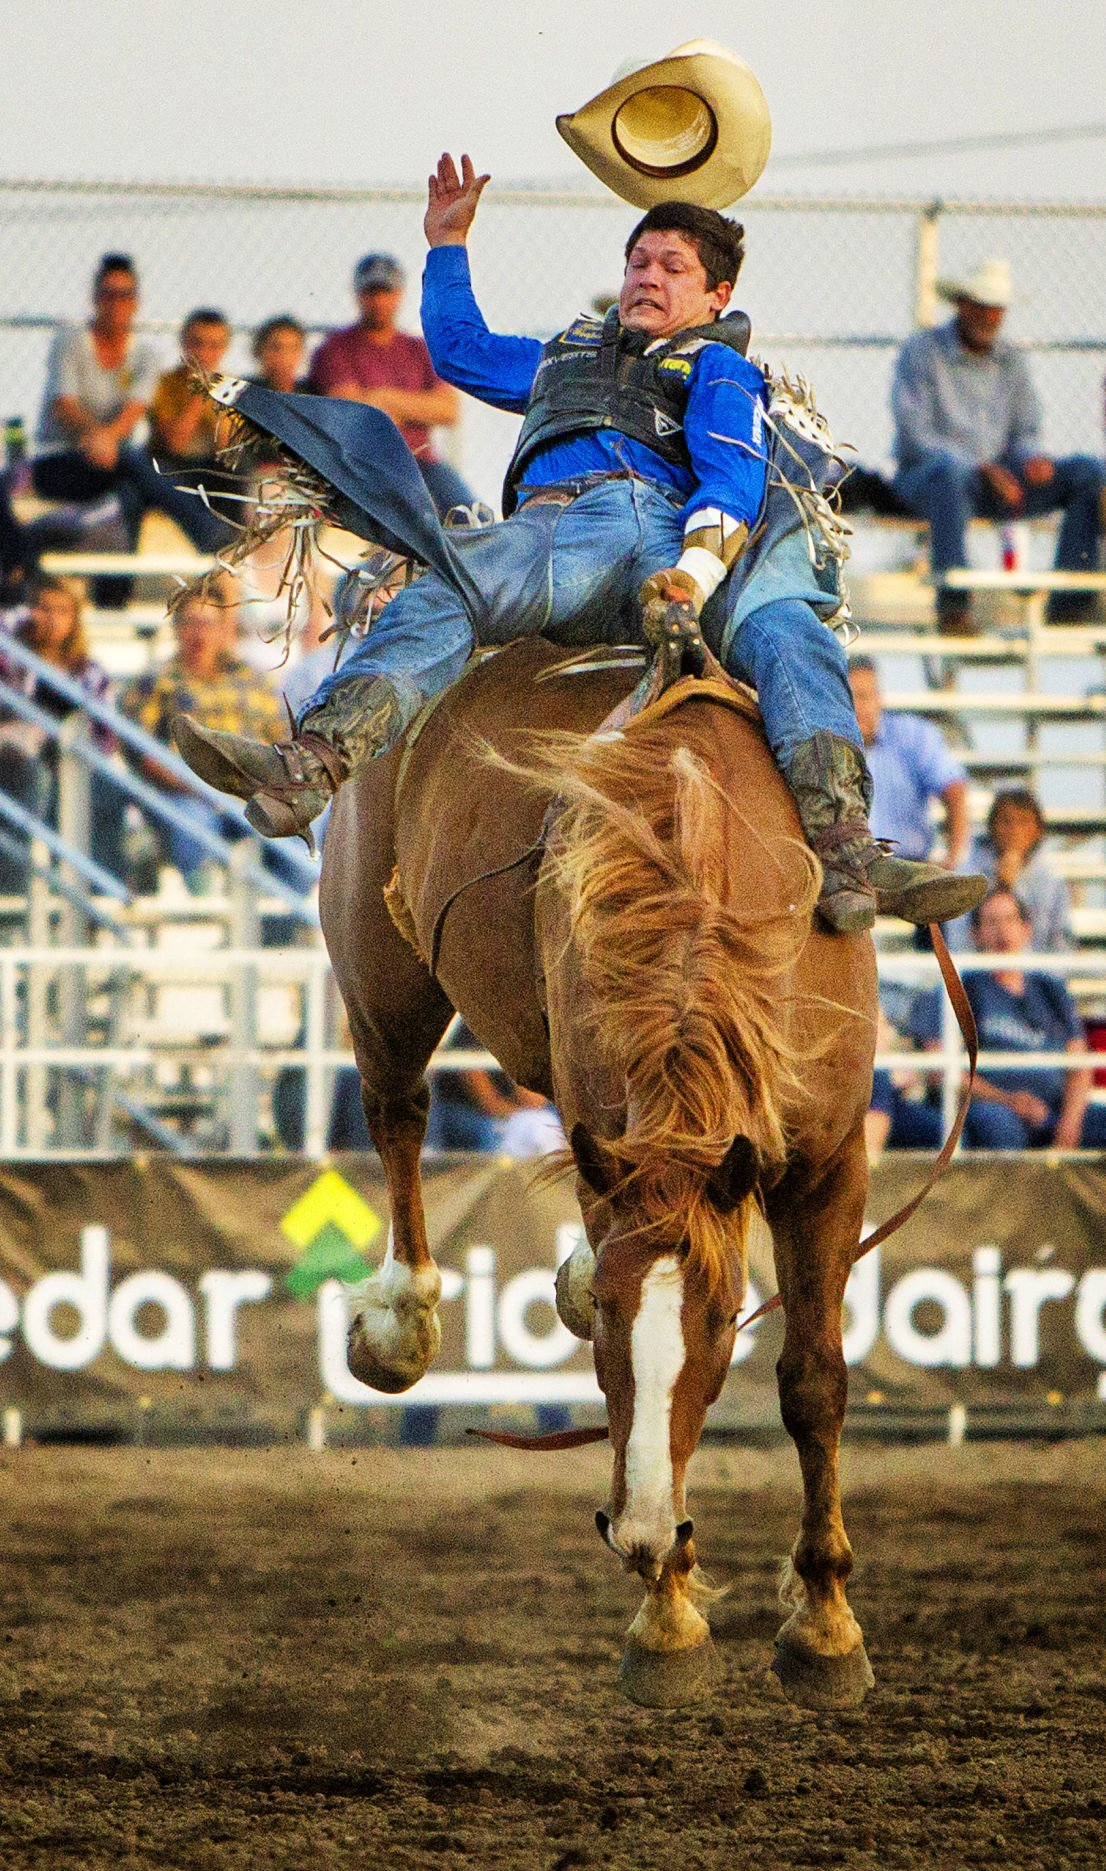 Four Things To Check Out At The Twin Falls County Fair